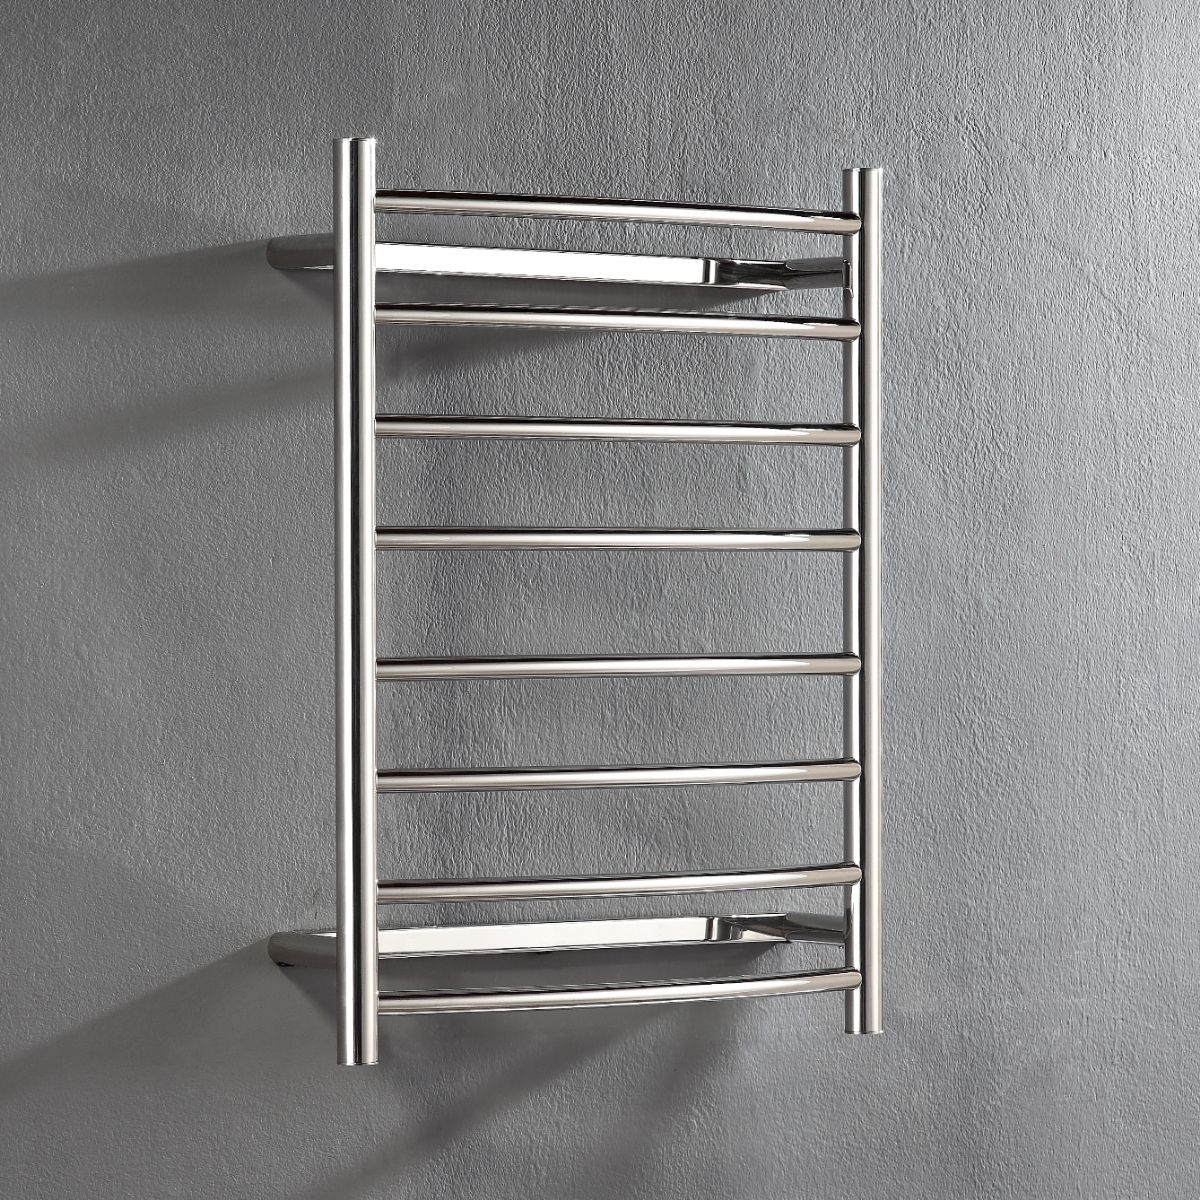 Unheated Towel Rail: HOTWIRE™ Curve R8c. 'Easy Fix' Round Curved 8 Bar, Polished